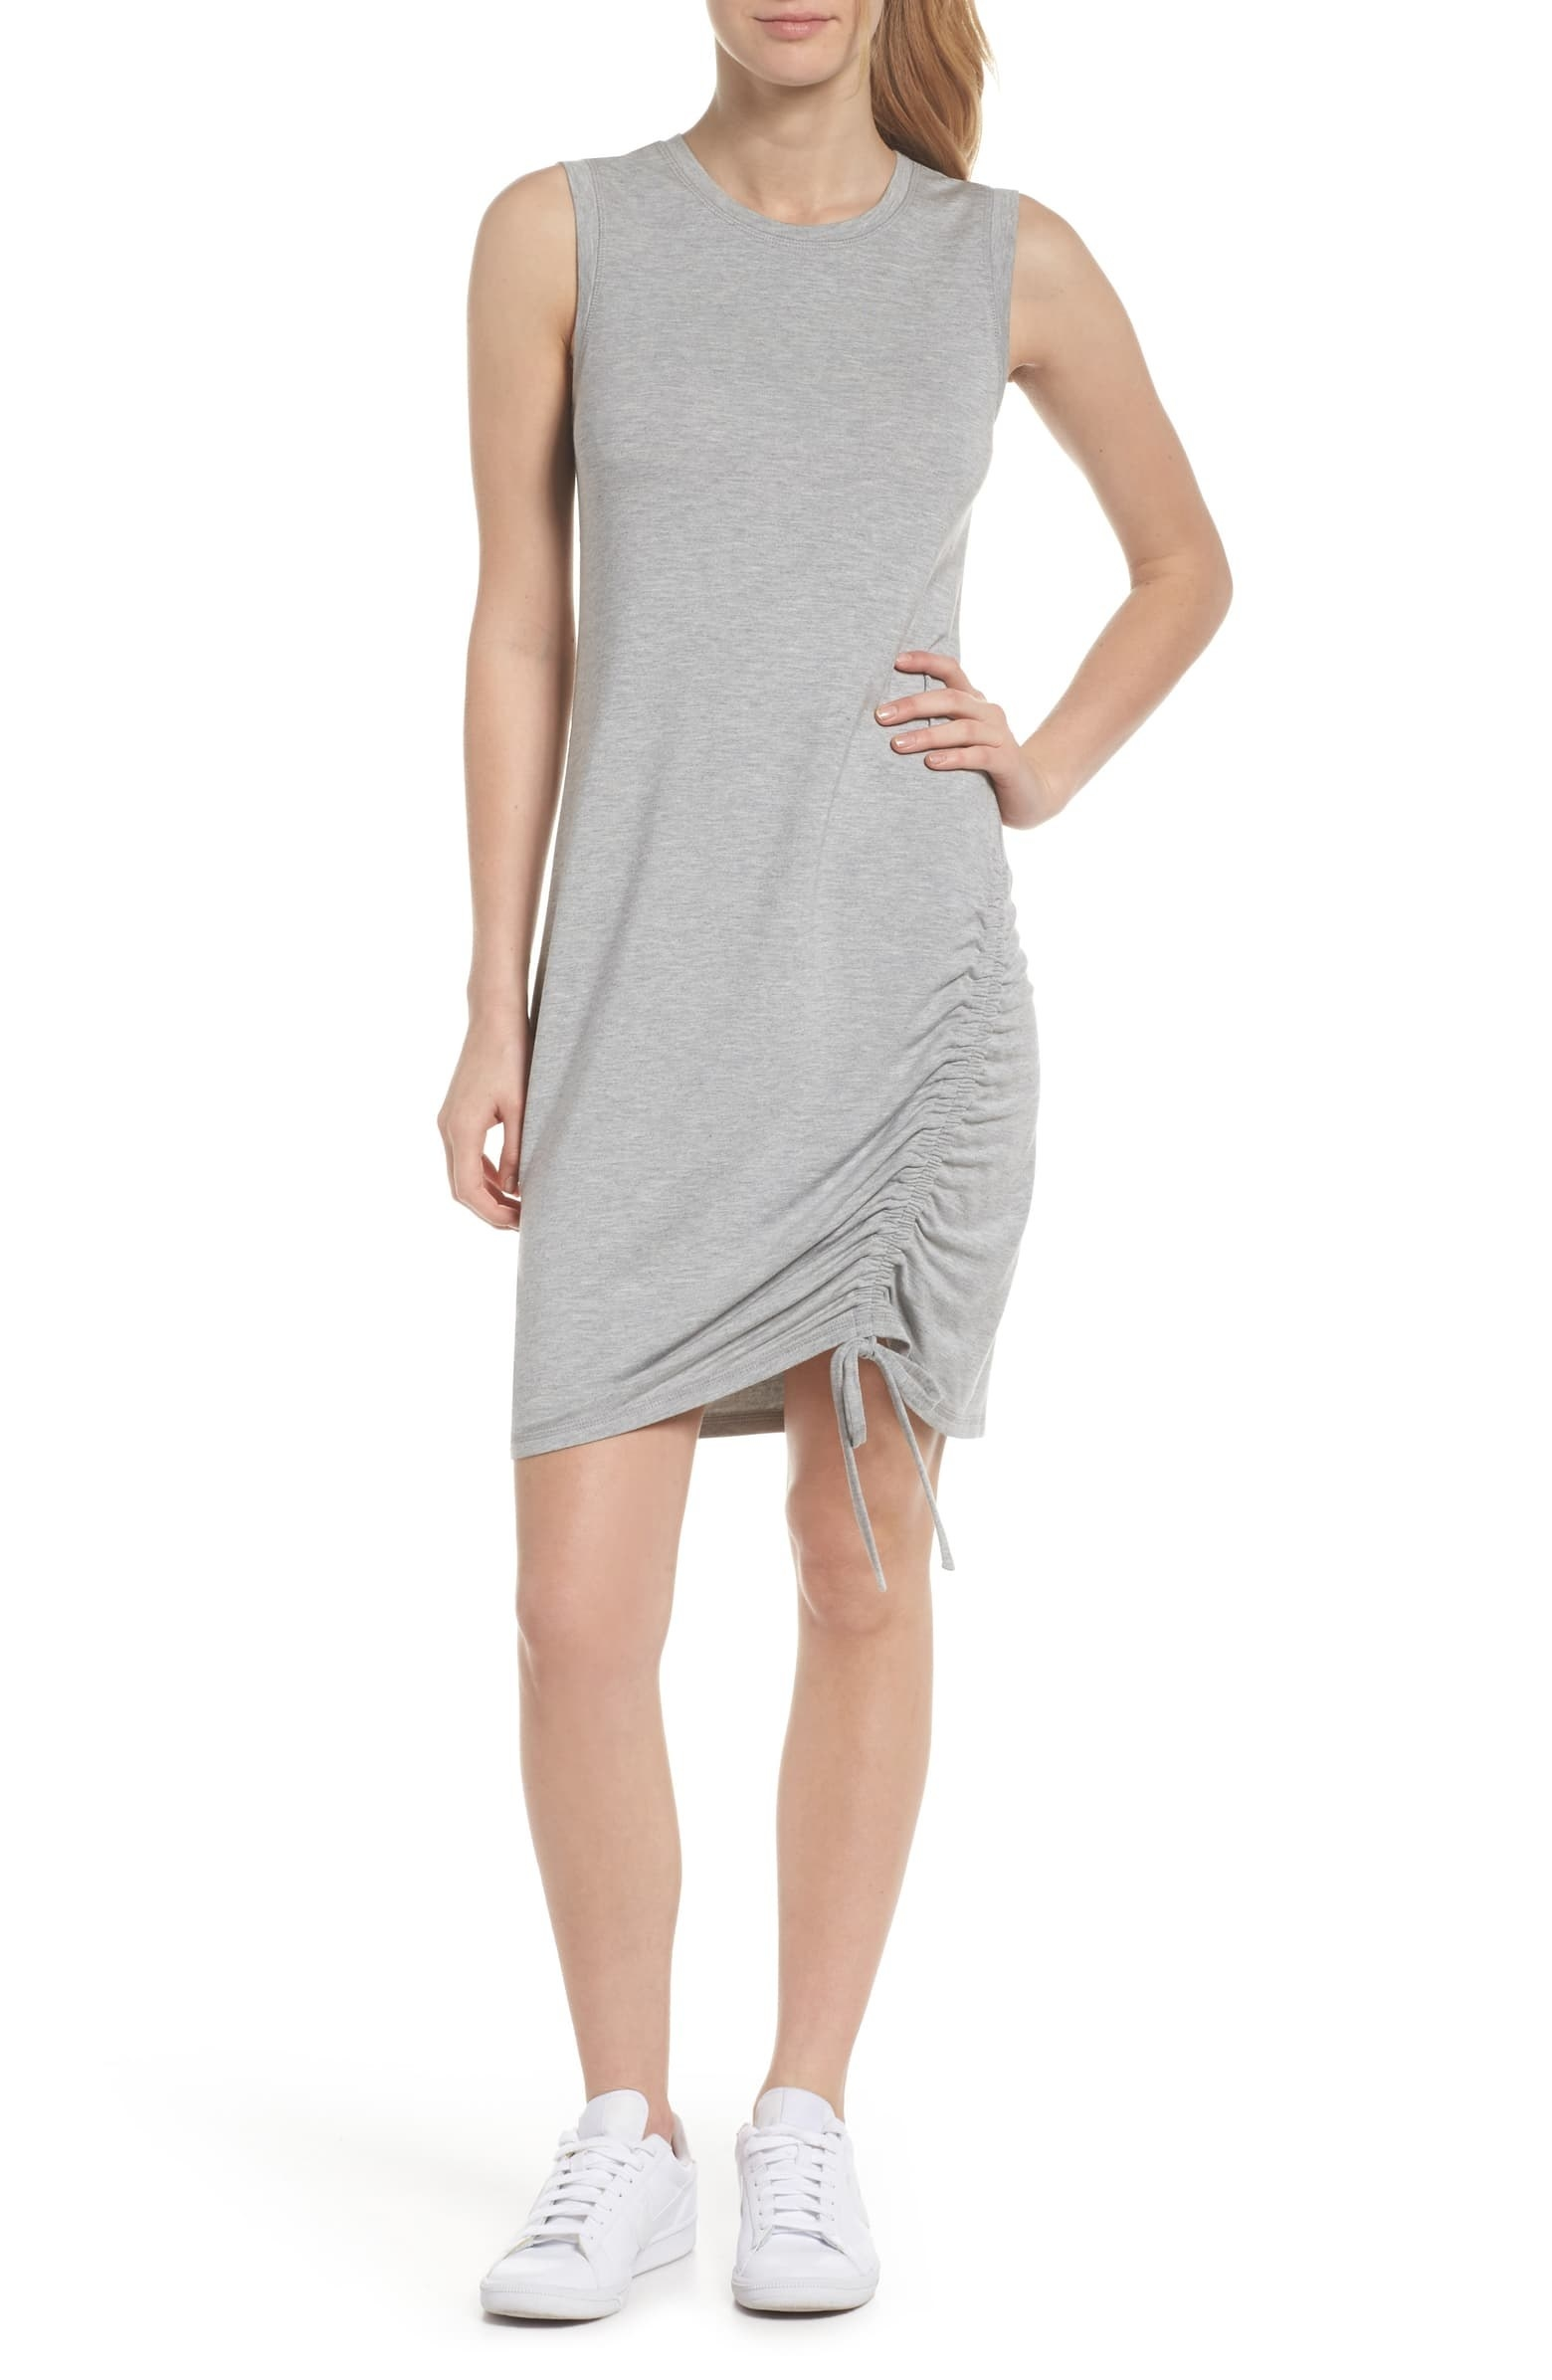 Model wearing the dress with a cinch-able ruched detailing on the side hem